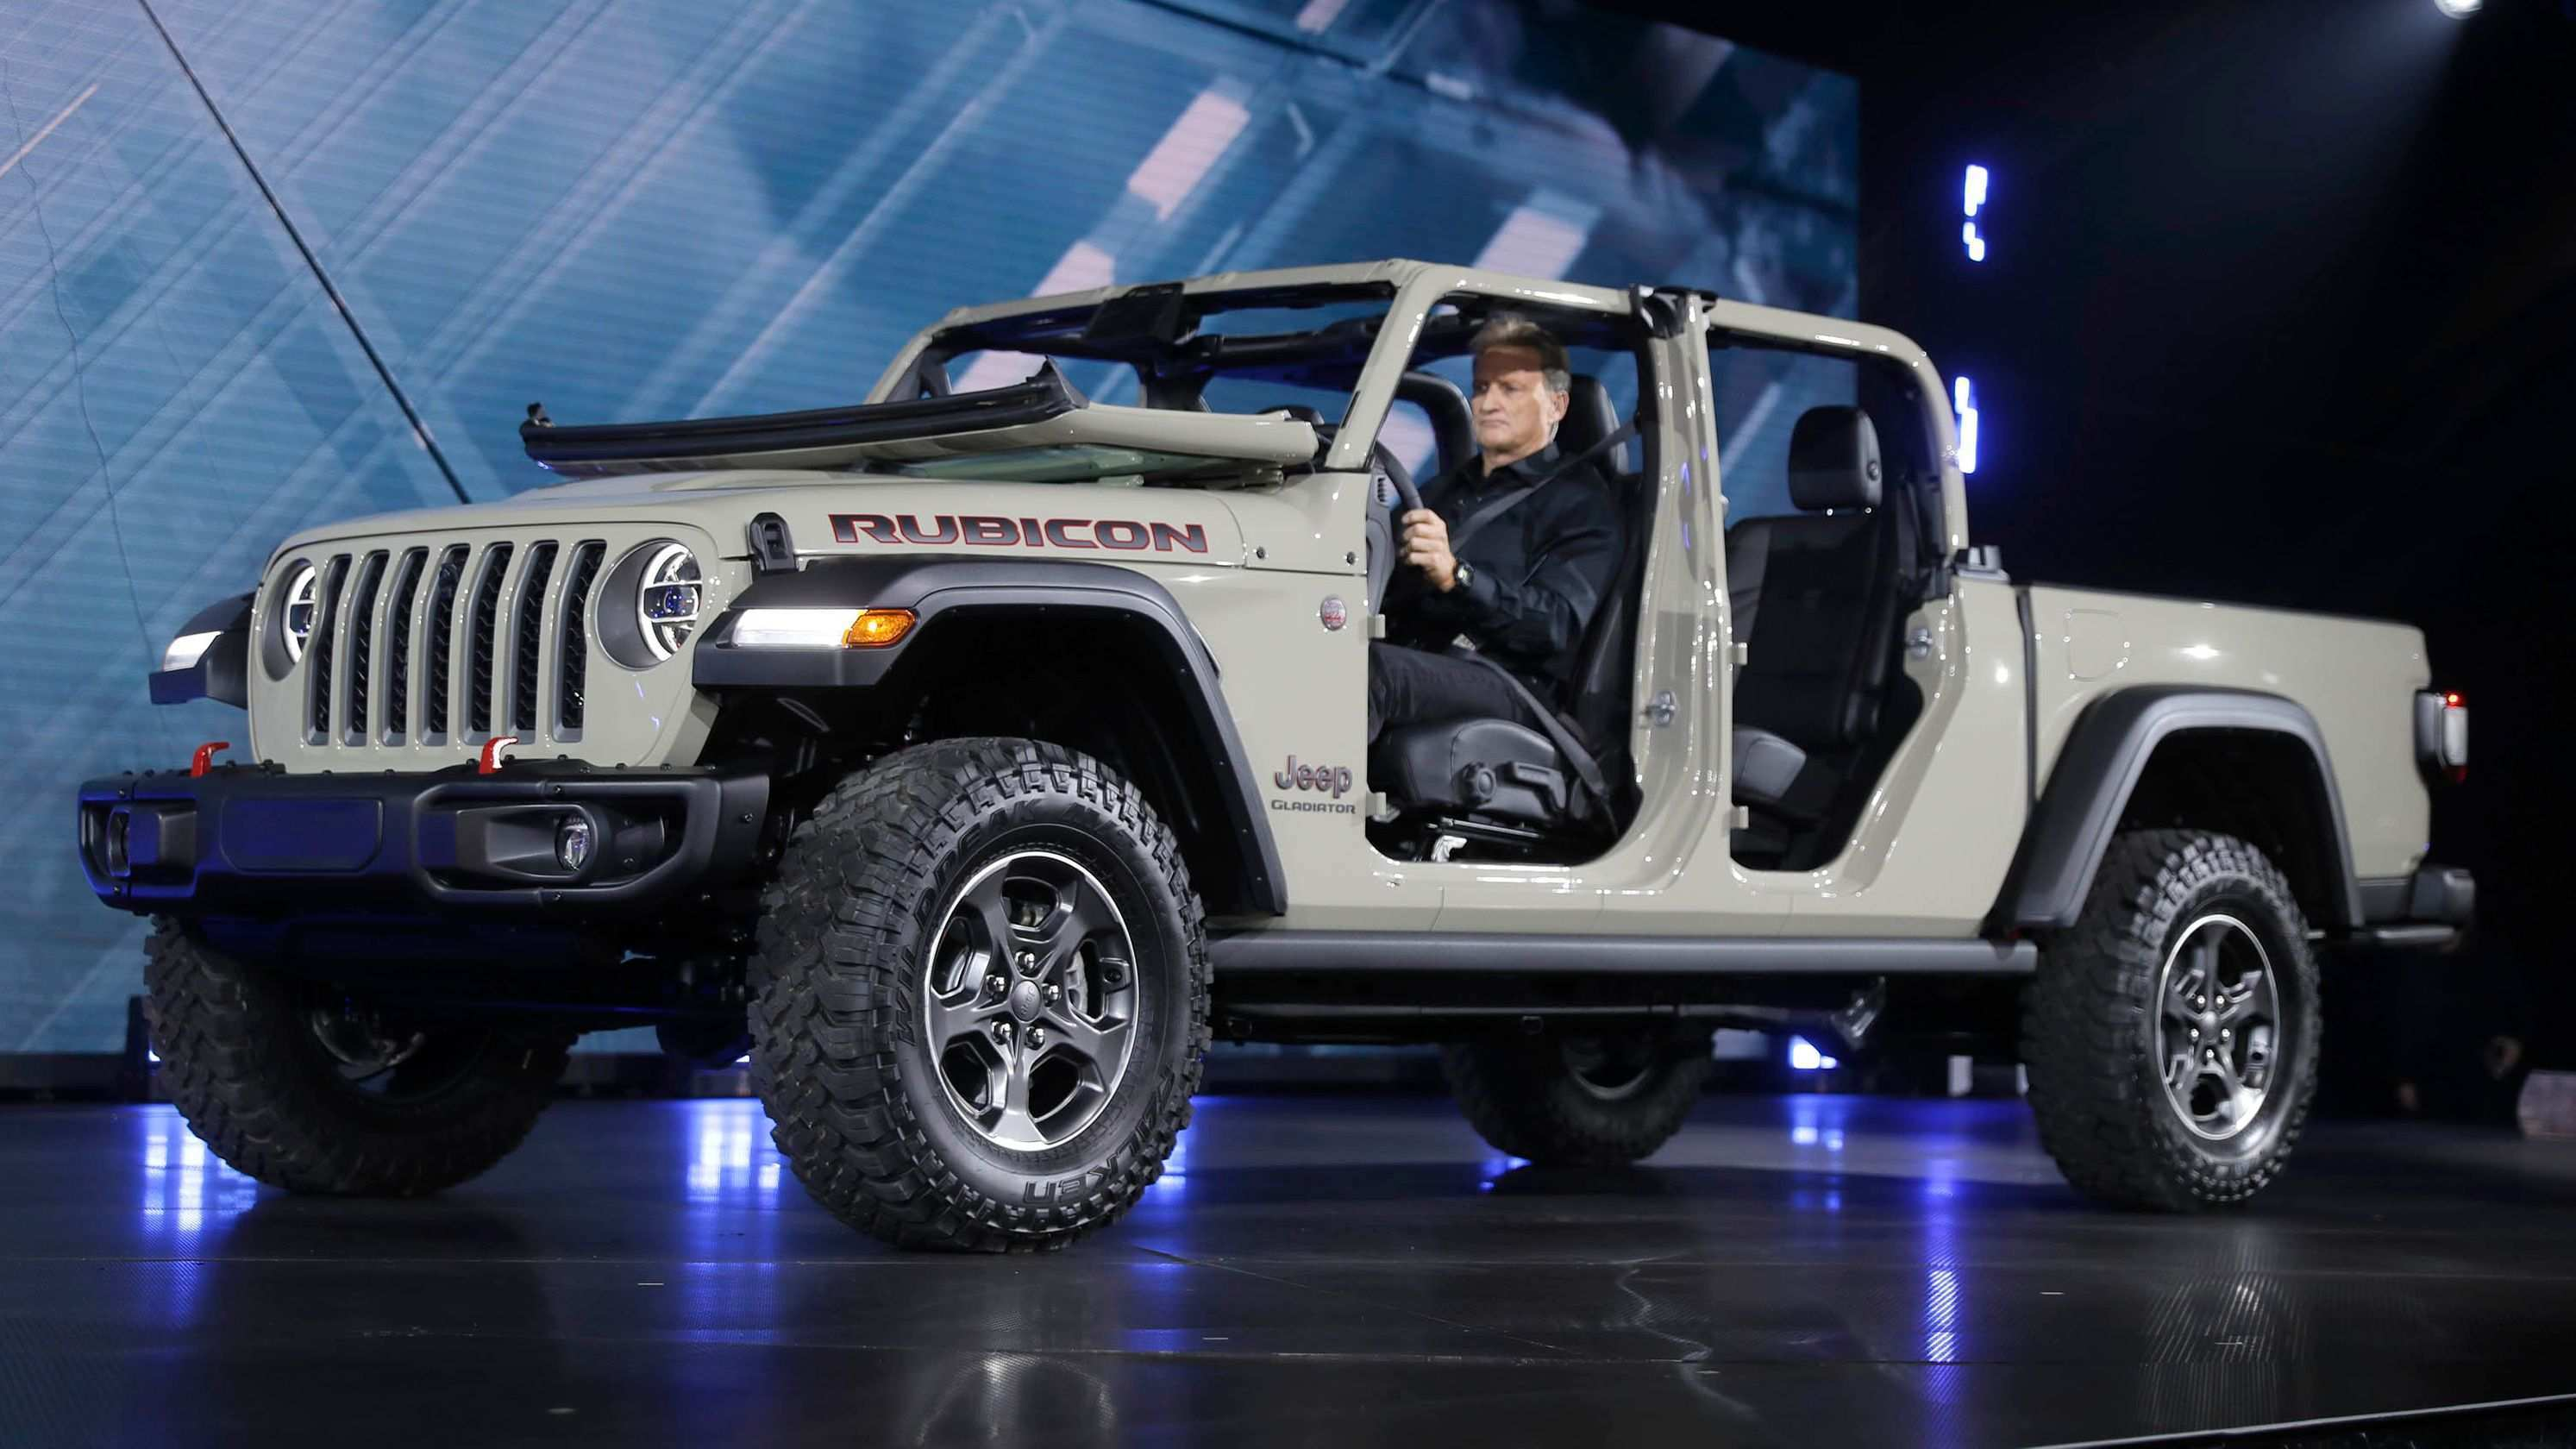 42 Great 2020 Jeep Rubicon History with 2020 Jeep Rubicon